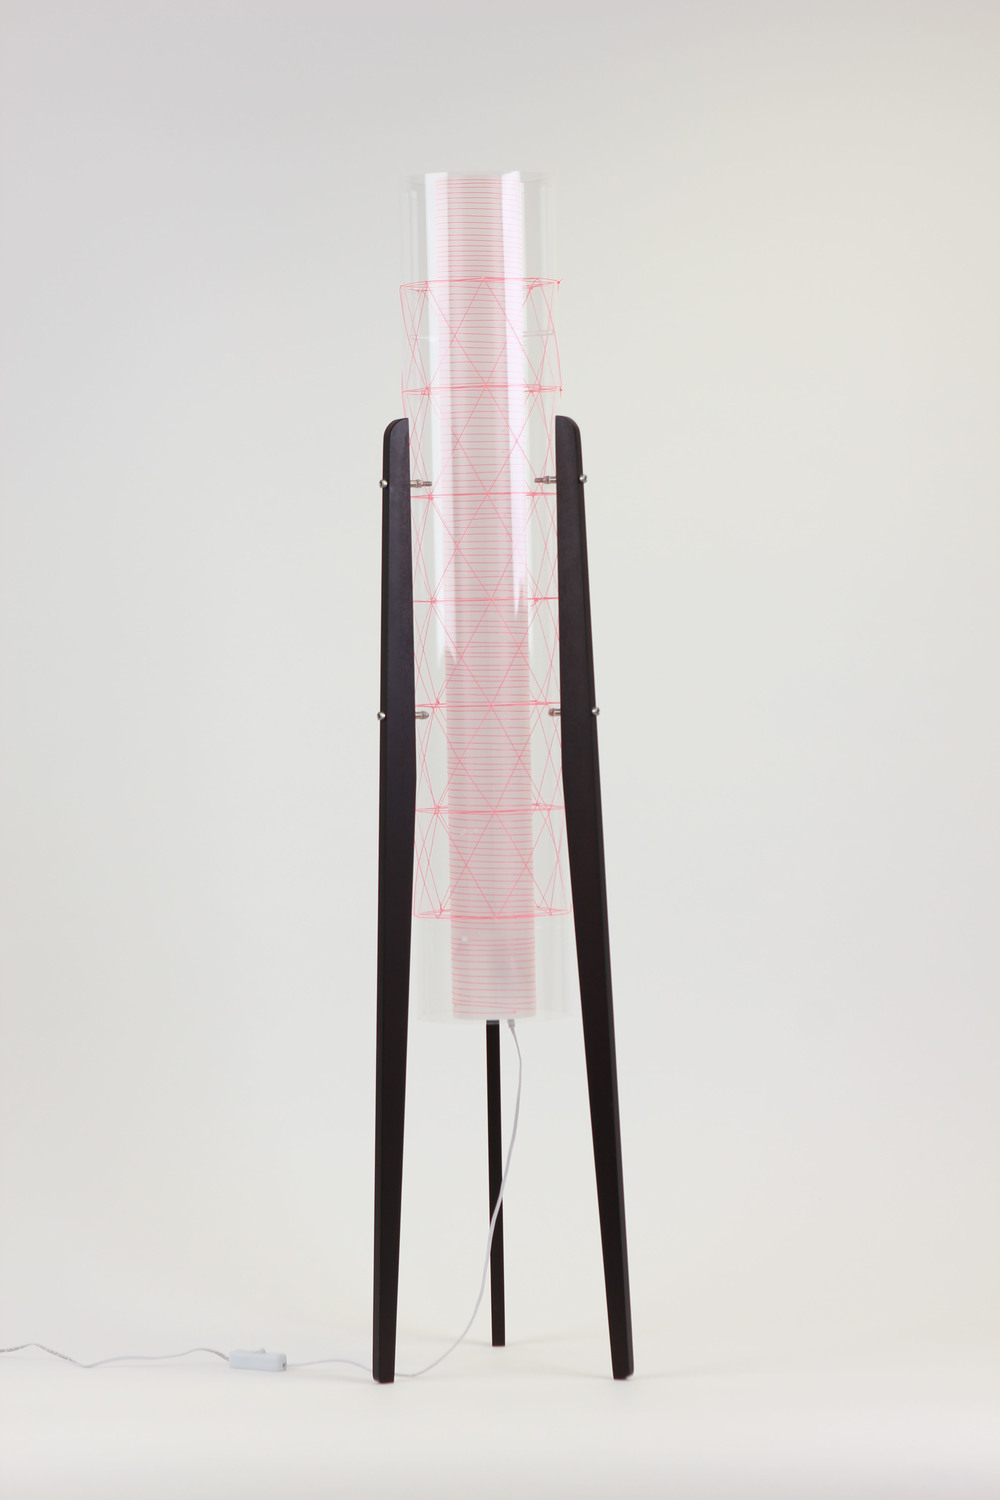 Sputnik Floor Lamp - pink weave www.light.co.uk